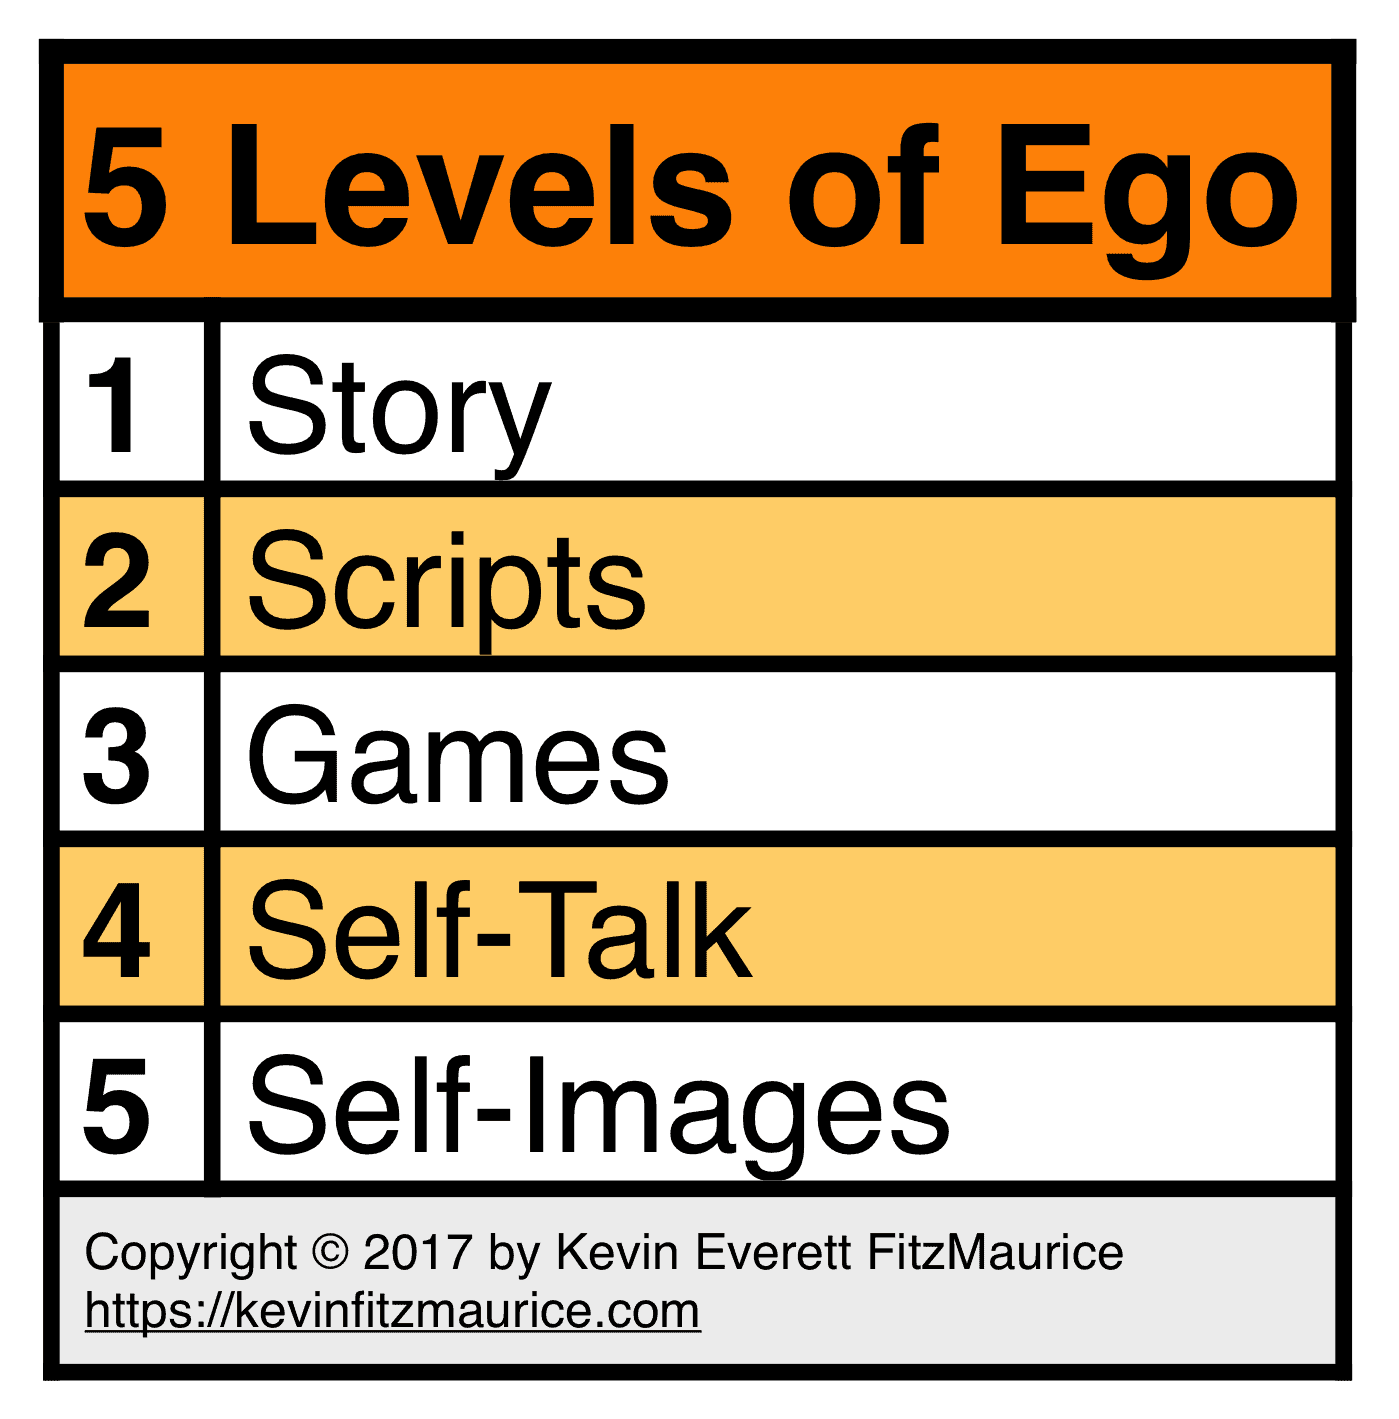 5 Levels of Ego from What's Your Story